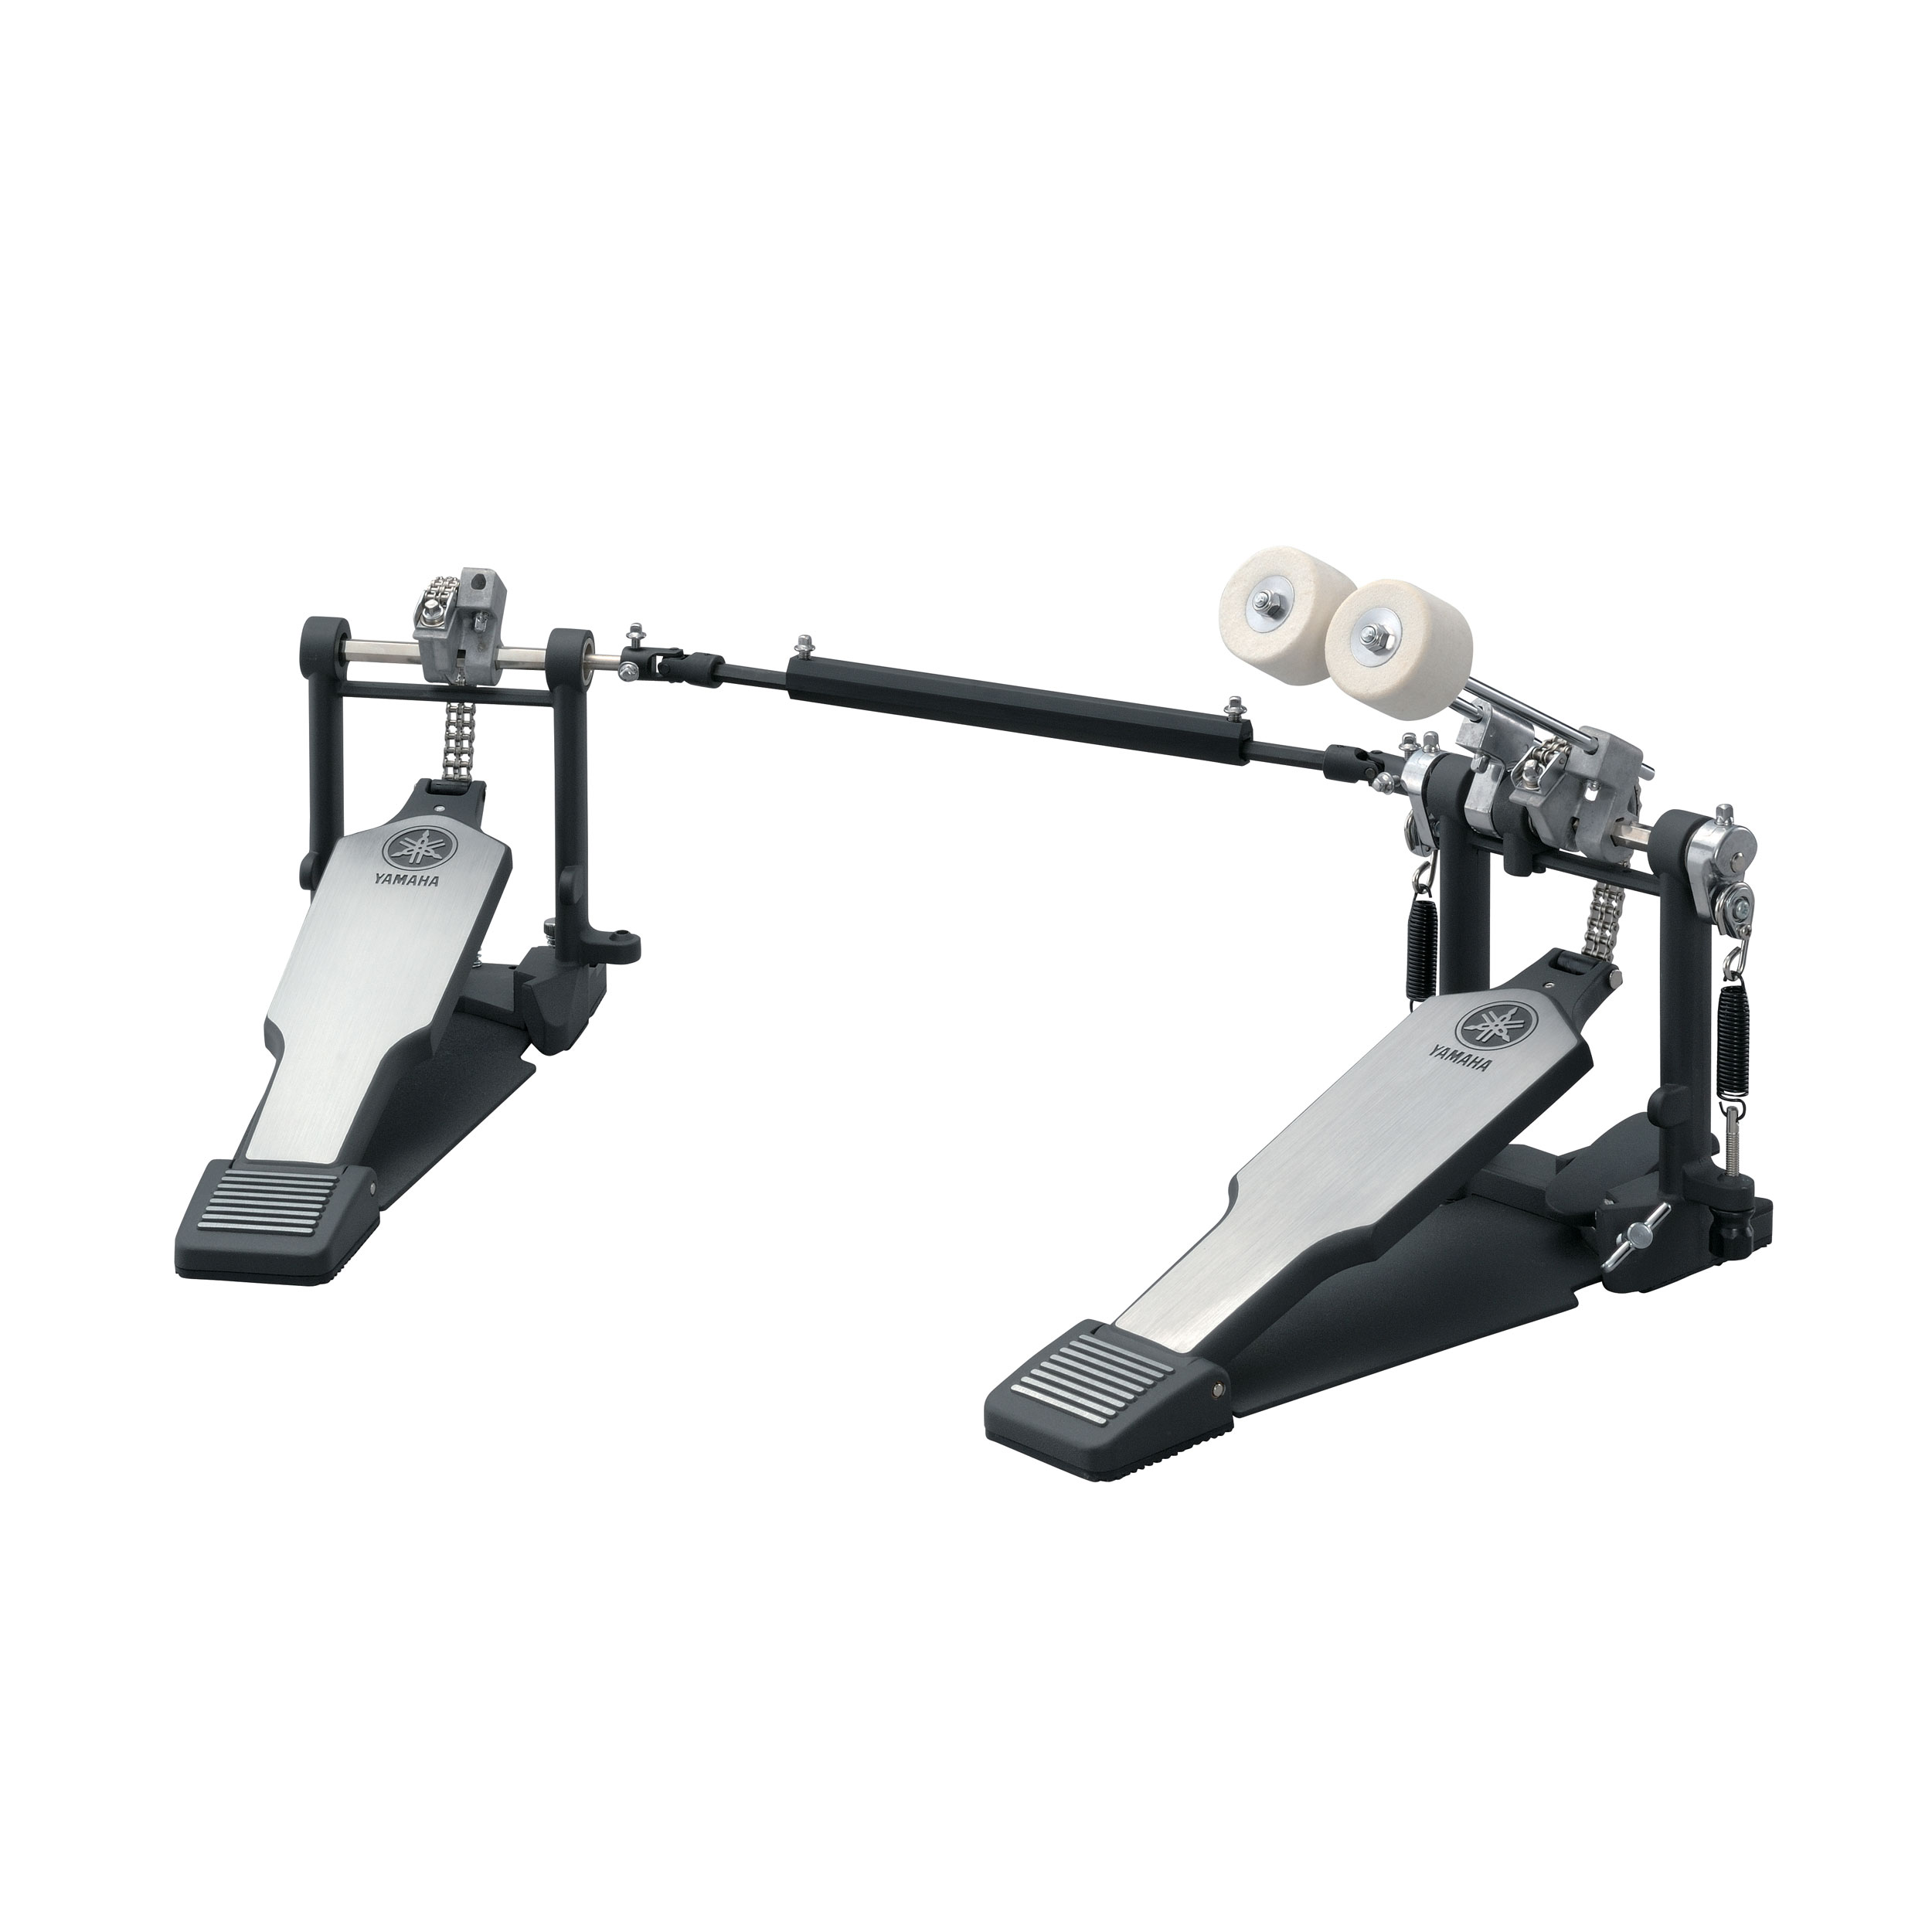 Yamaha Double Bass Pedal with Double Chain Drive